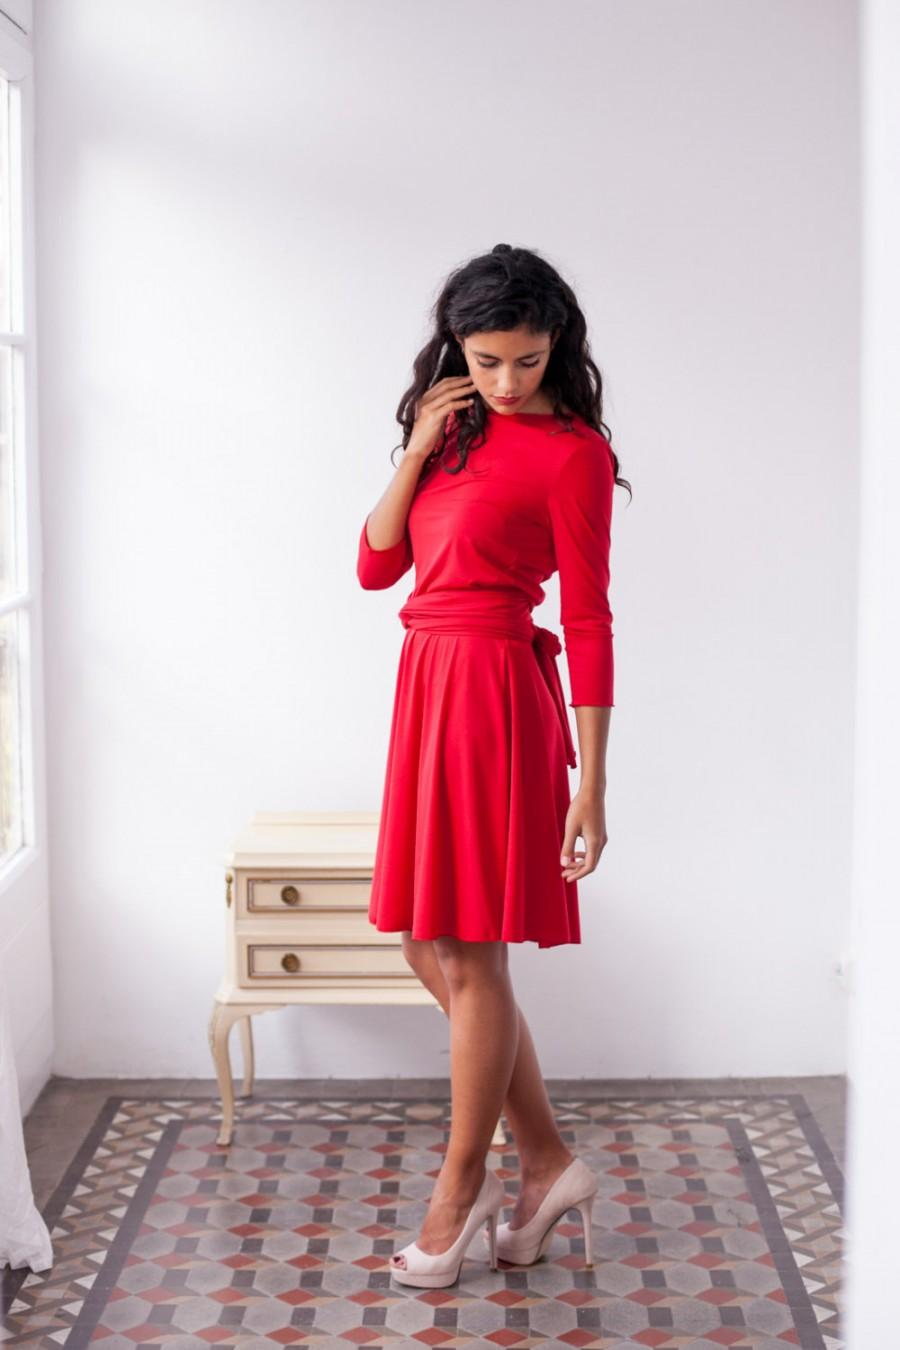 Short red dress red wrap dress red dress with sleeves short red dress red wrap dress red dress with sleeves bridesmaid dress red party dress convertible dress 34 sleeve dress long sleeve ombrellifo Choice Image